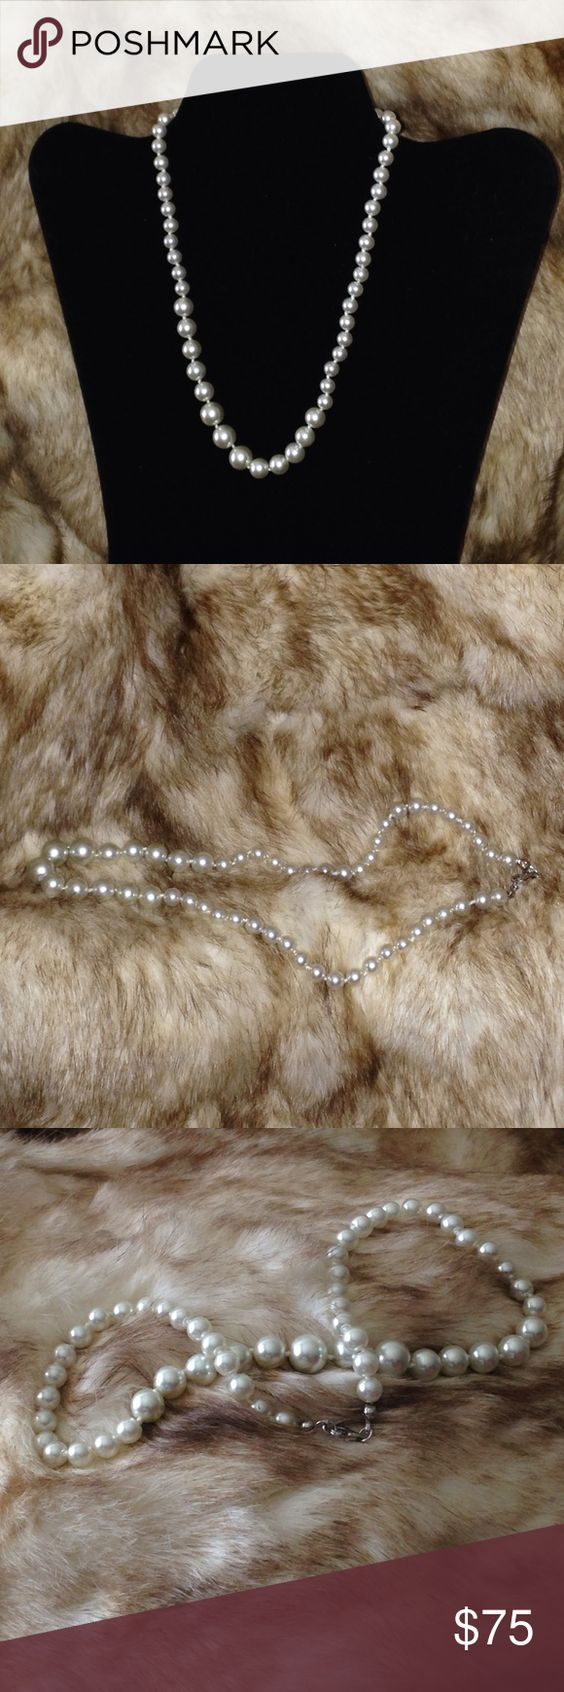 """🔥925 Pearl Necklace🔥 Every woman loves pearls. 😍😍 Pearl necklace 925. Silver clasps. 15"""" Jewelry Necklaces"""